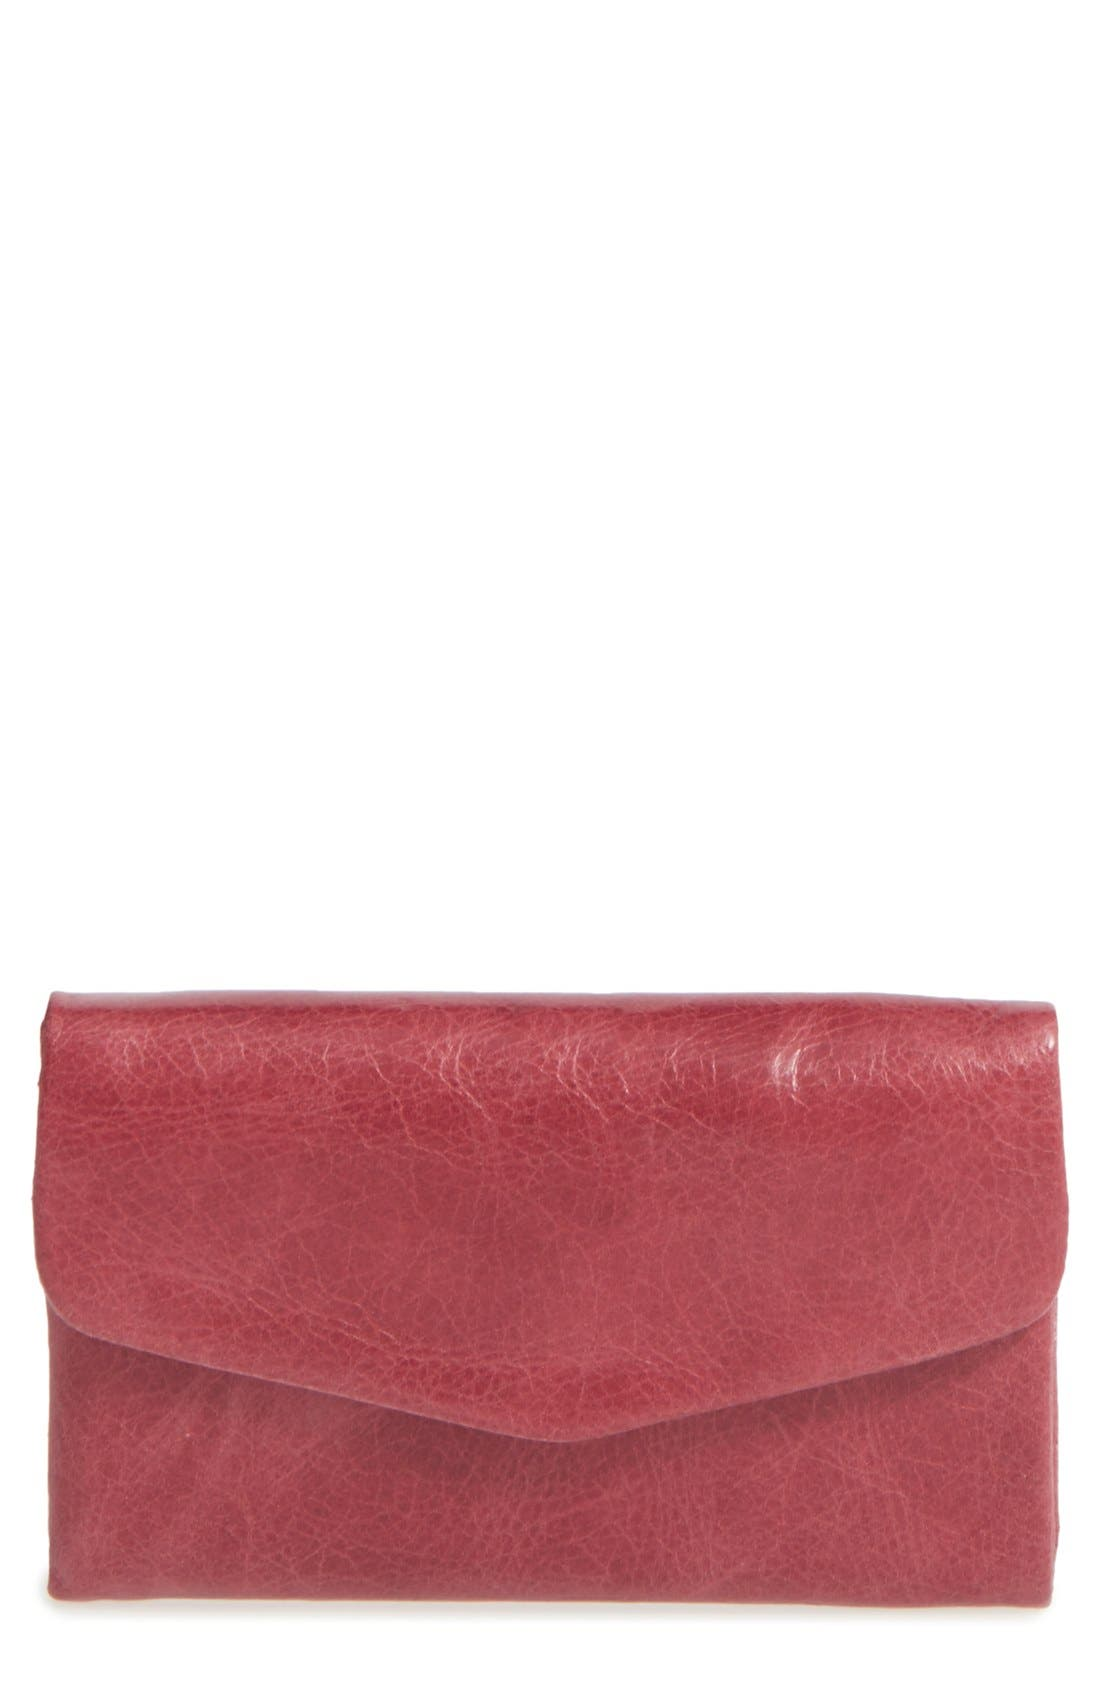 Alternate Image 1 Selected - Hobo 'Lacy' Trifold Wallet